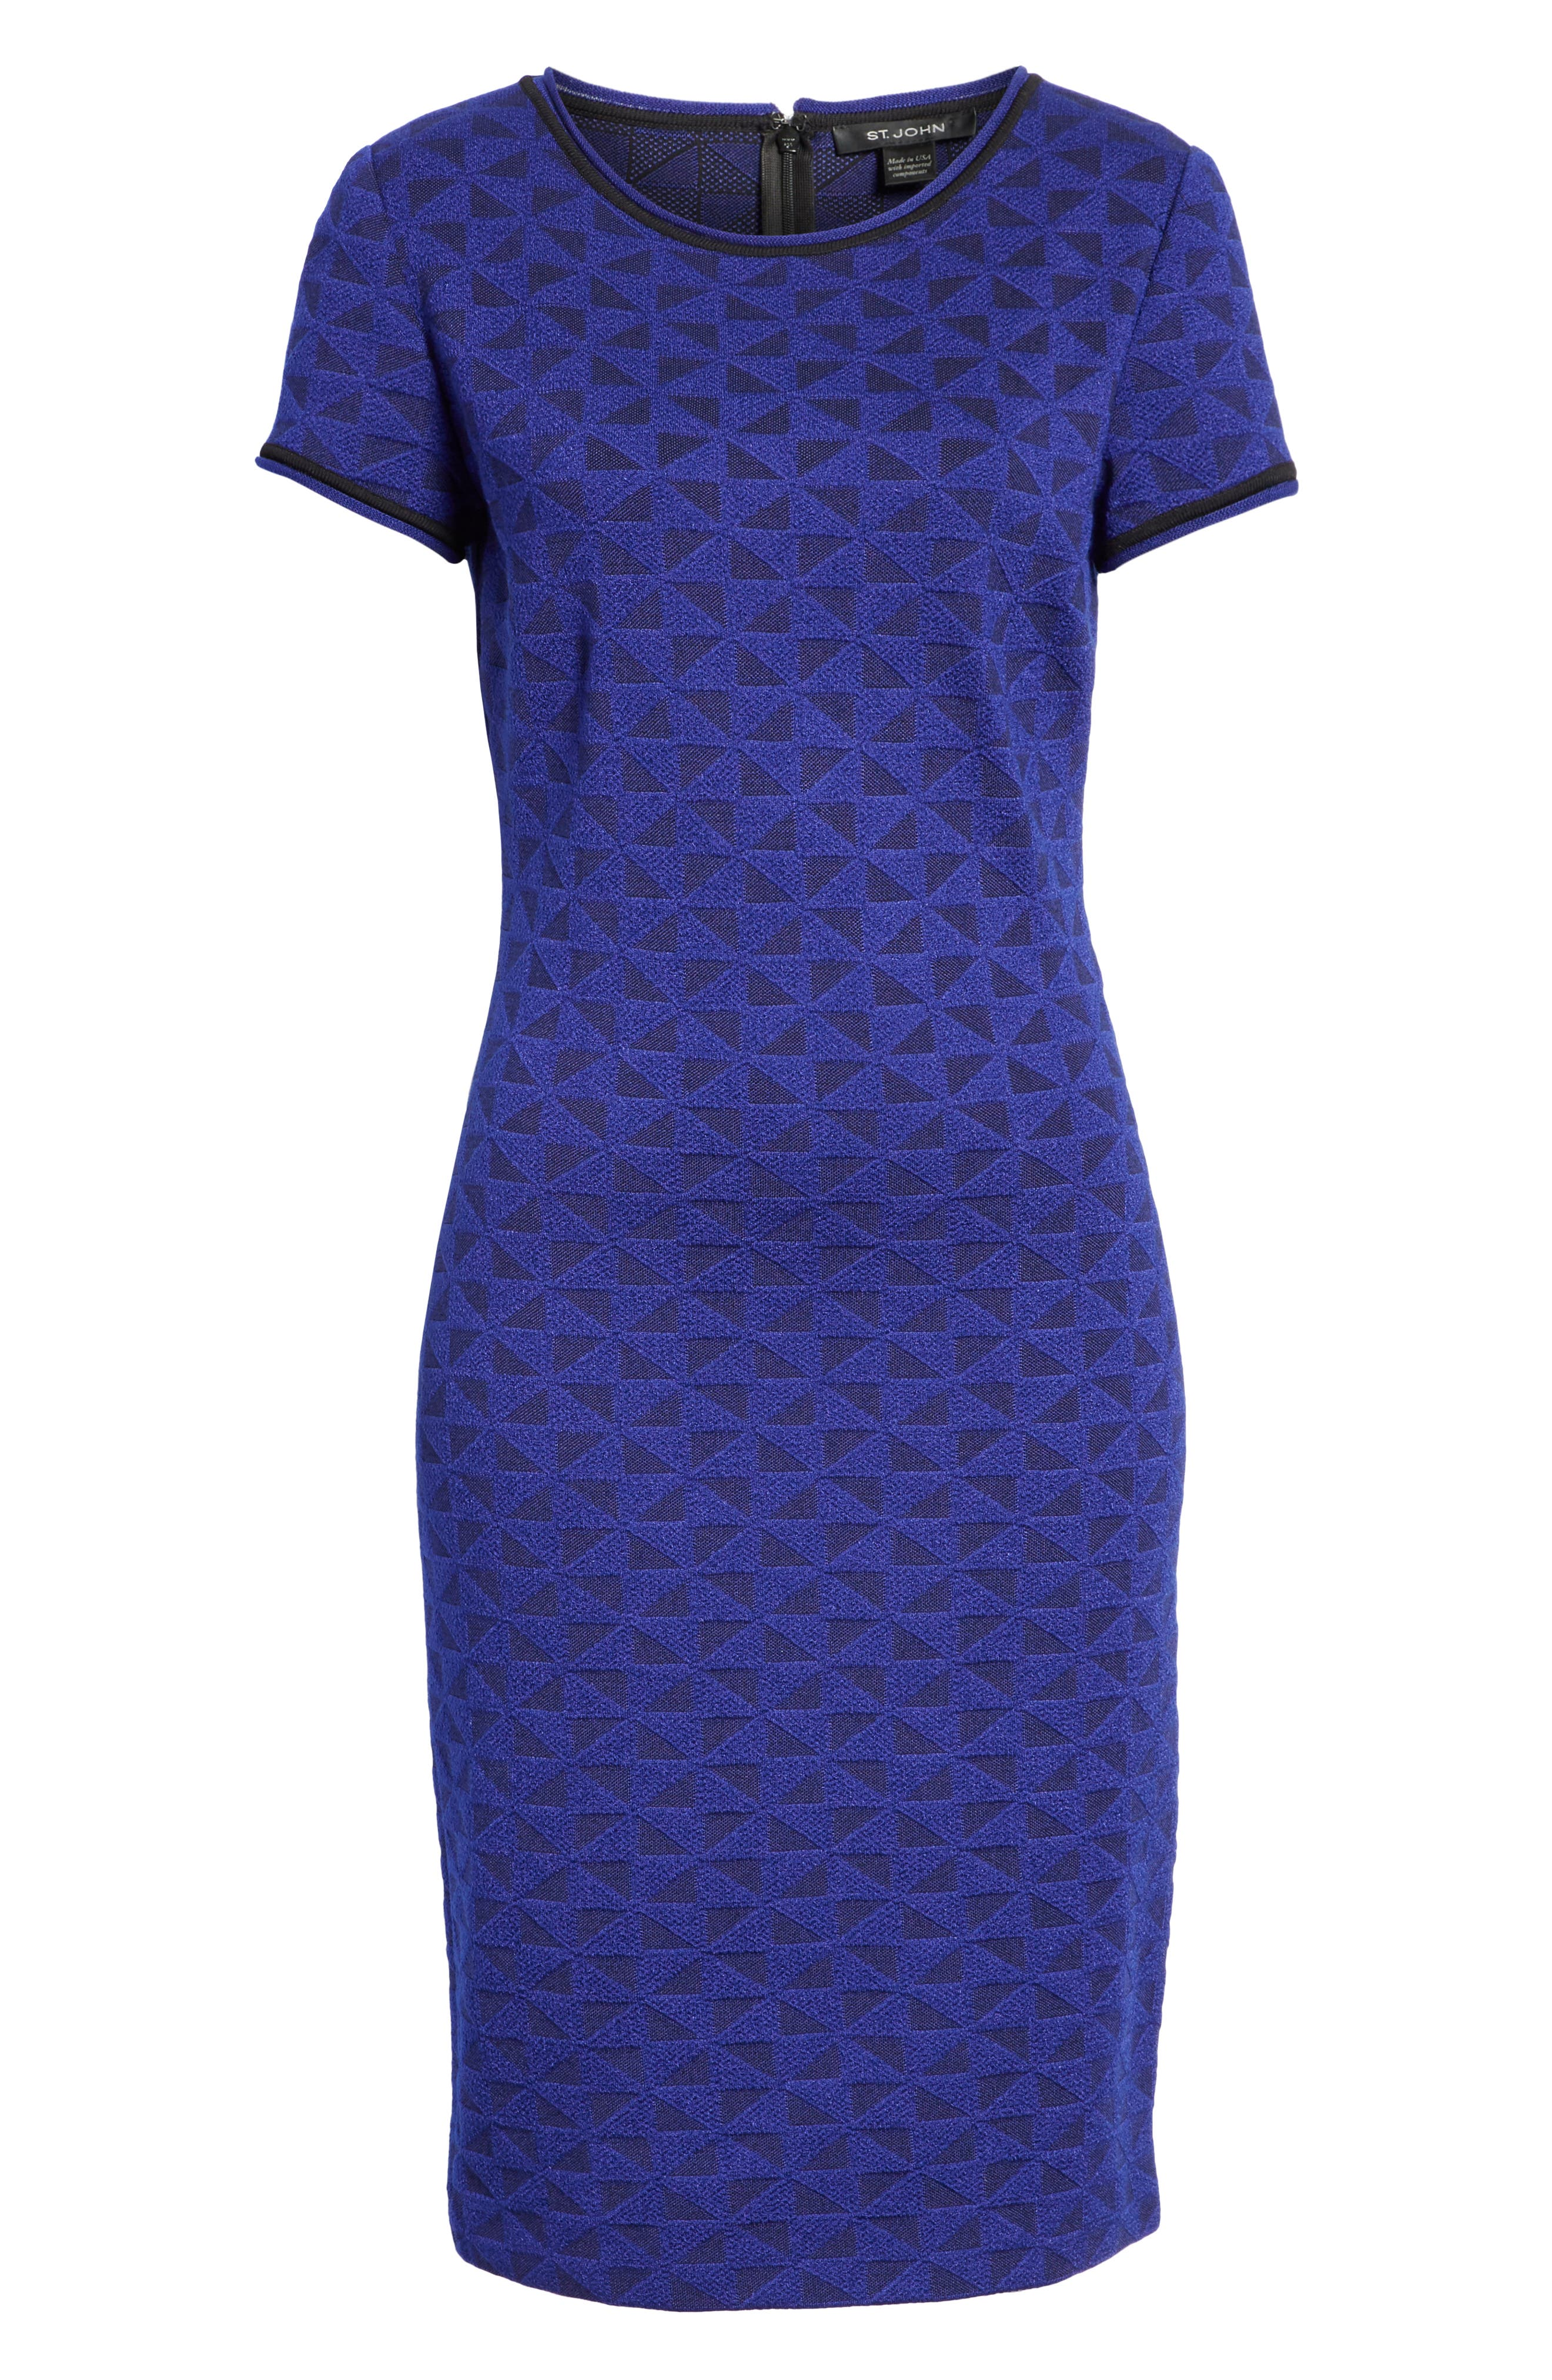 ST. JOHN COLLECTION, Micro Geo Blister Knit Sheath Dress, Alternate thumbnail 7, color, CAVIAR/ SAPPHIRE